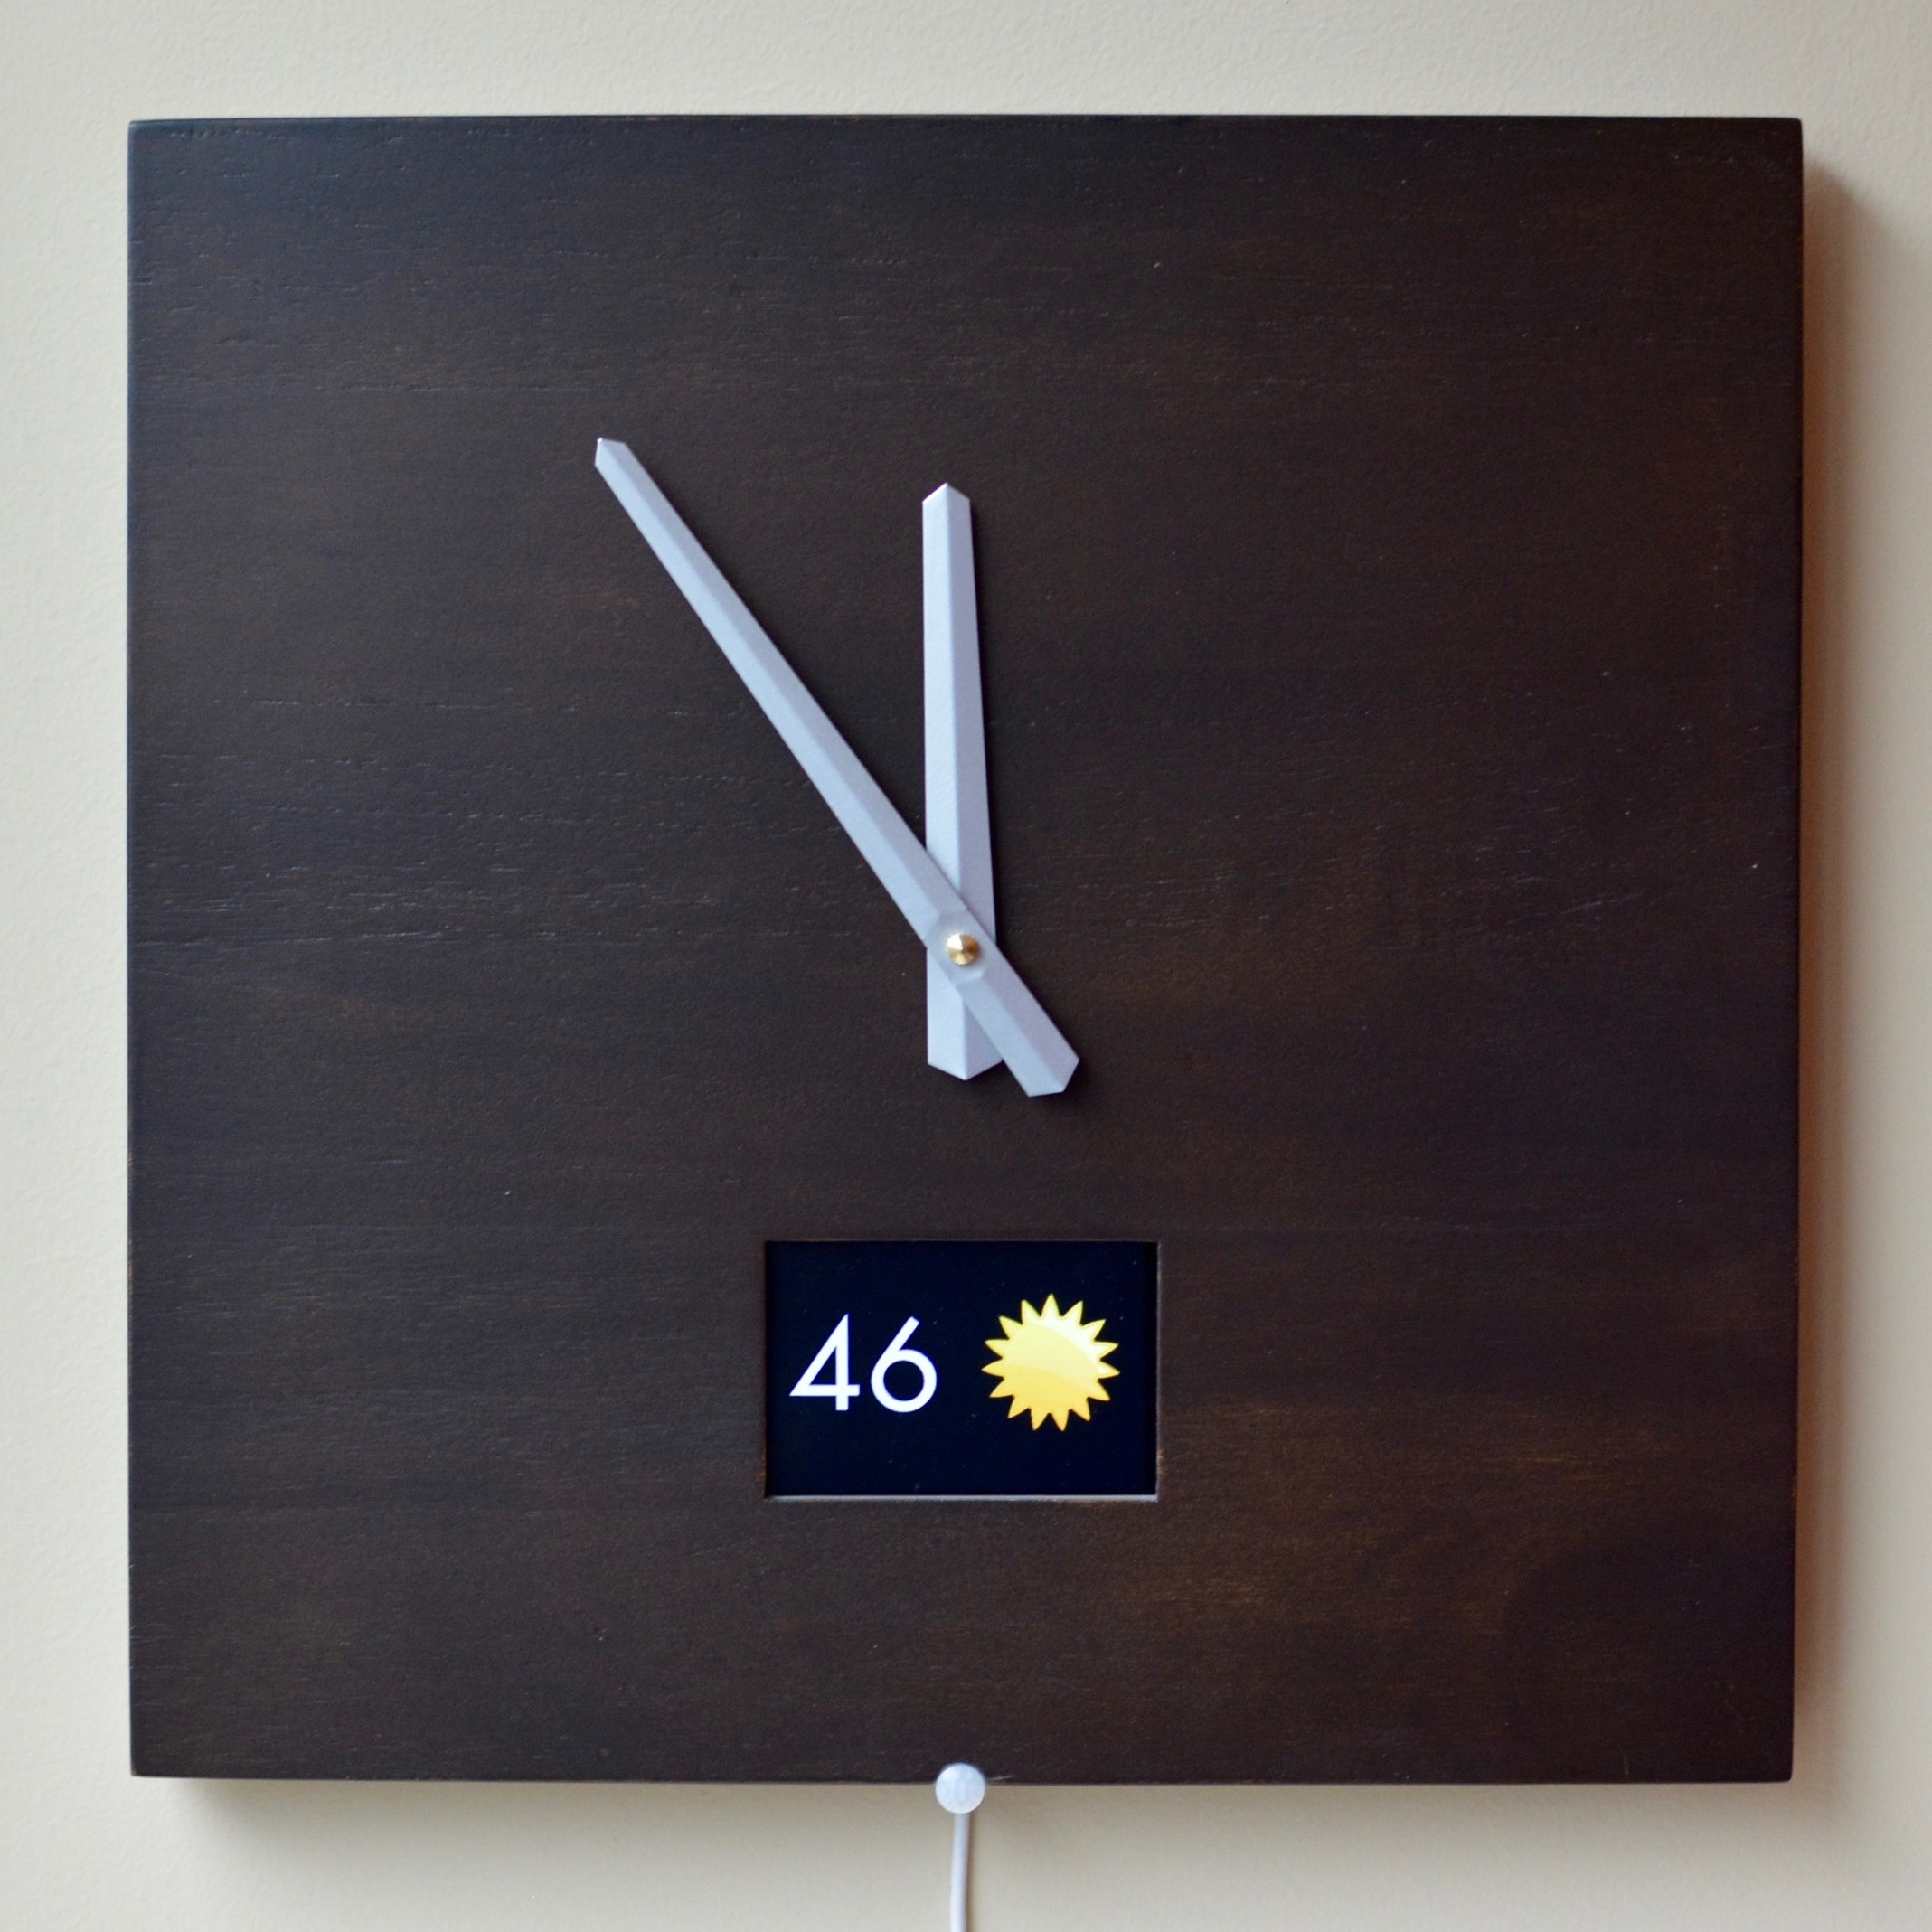 iot smart wall clock